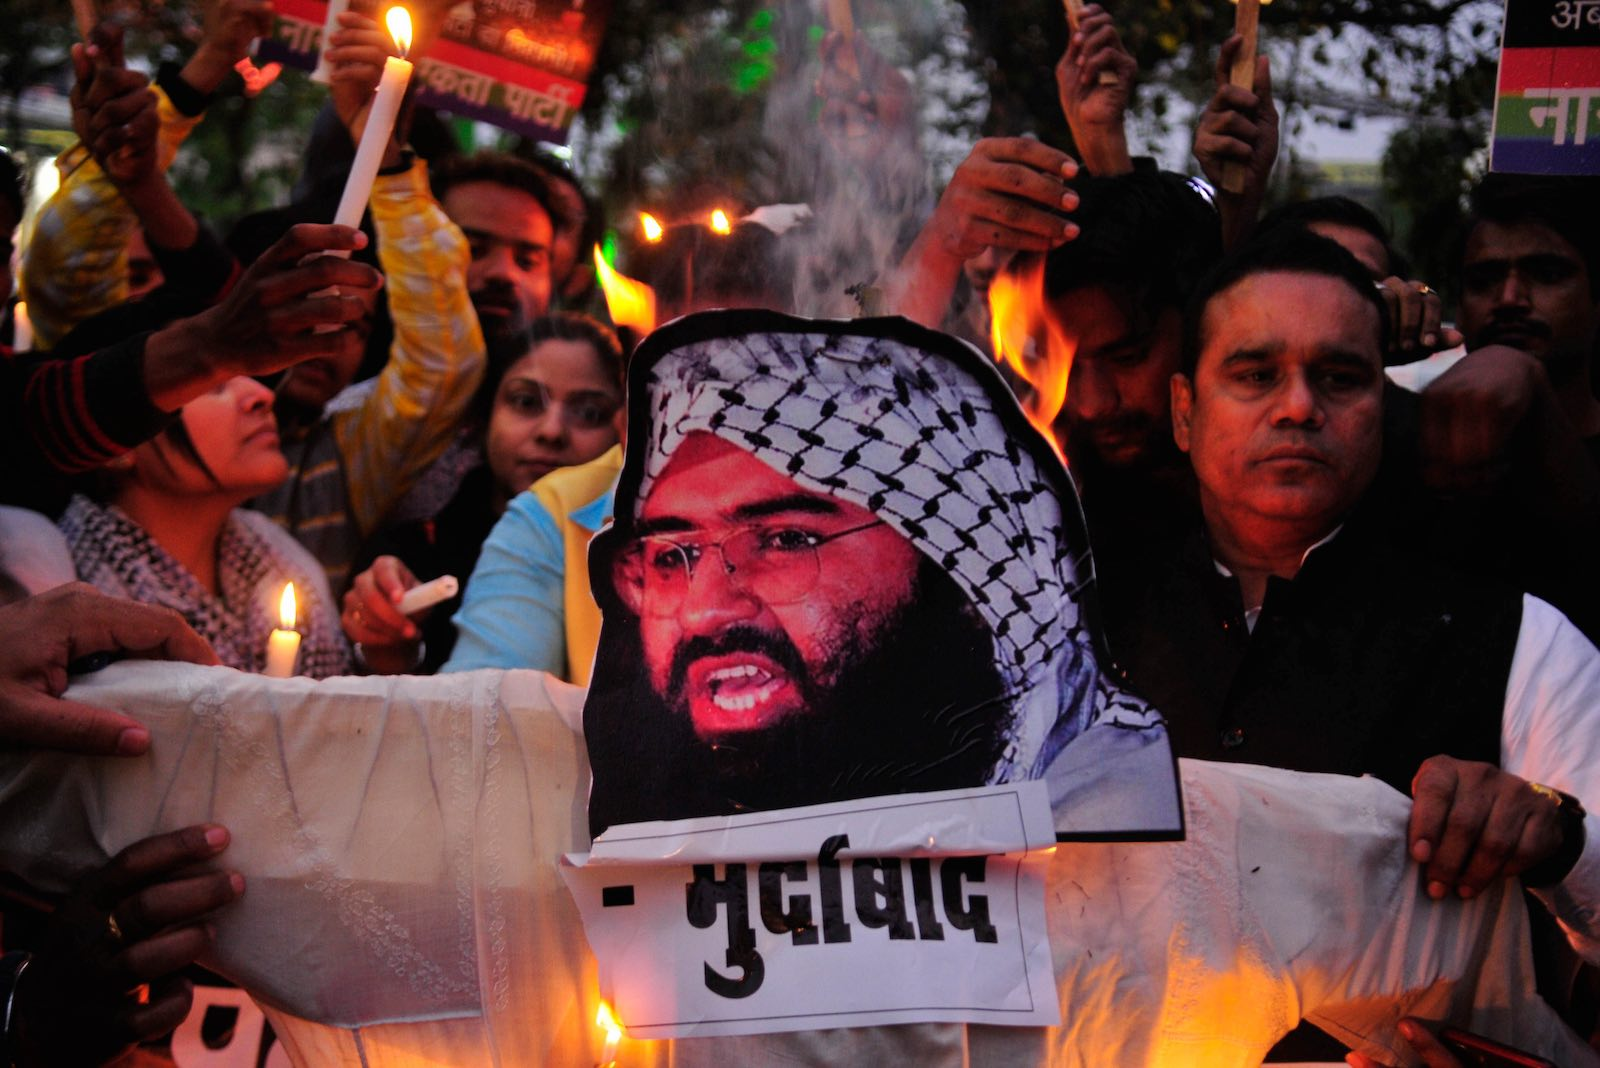 Demonstrators in India burn an effigy of Jaish-e-Mohammed leader Masood Azhar in February (Photo: Deepak Gupta via Getty)